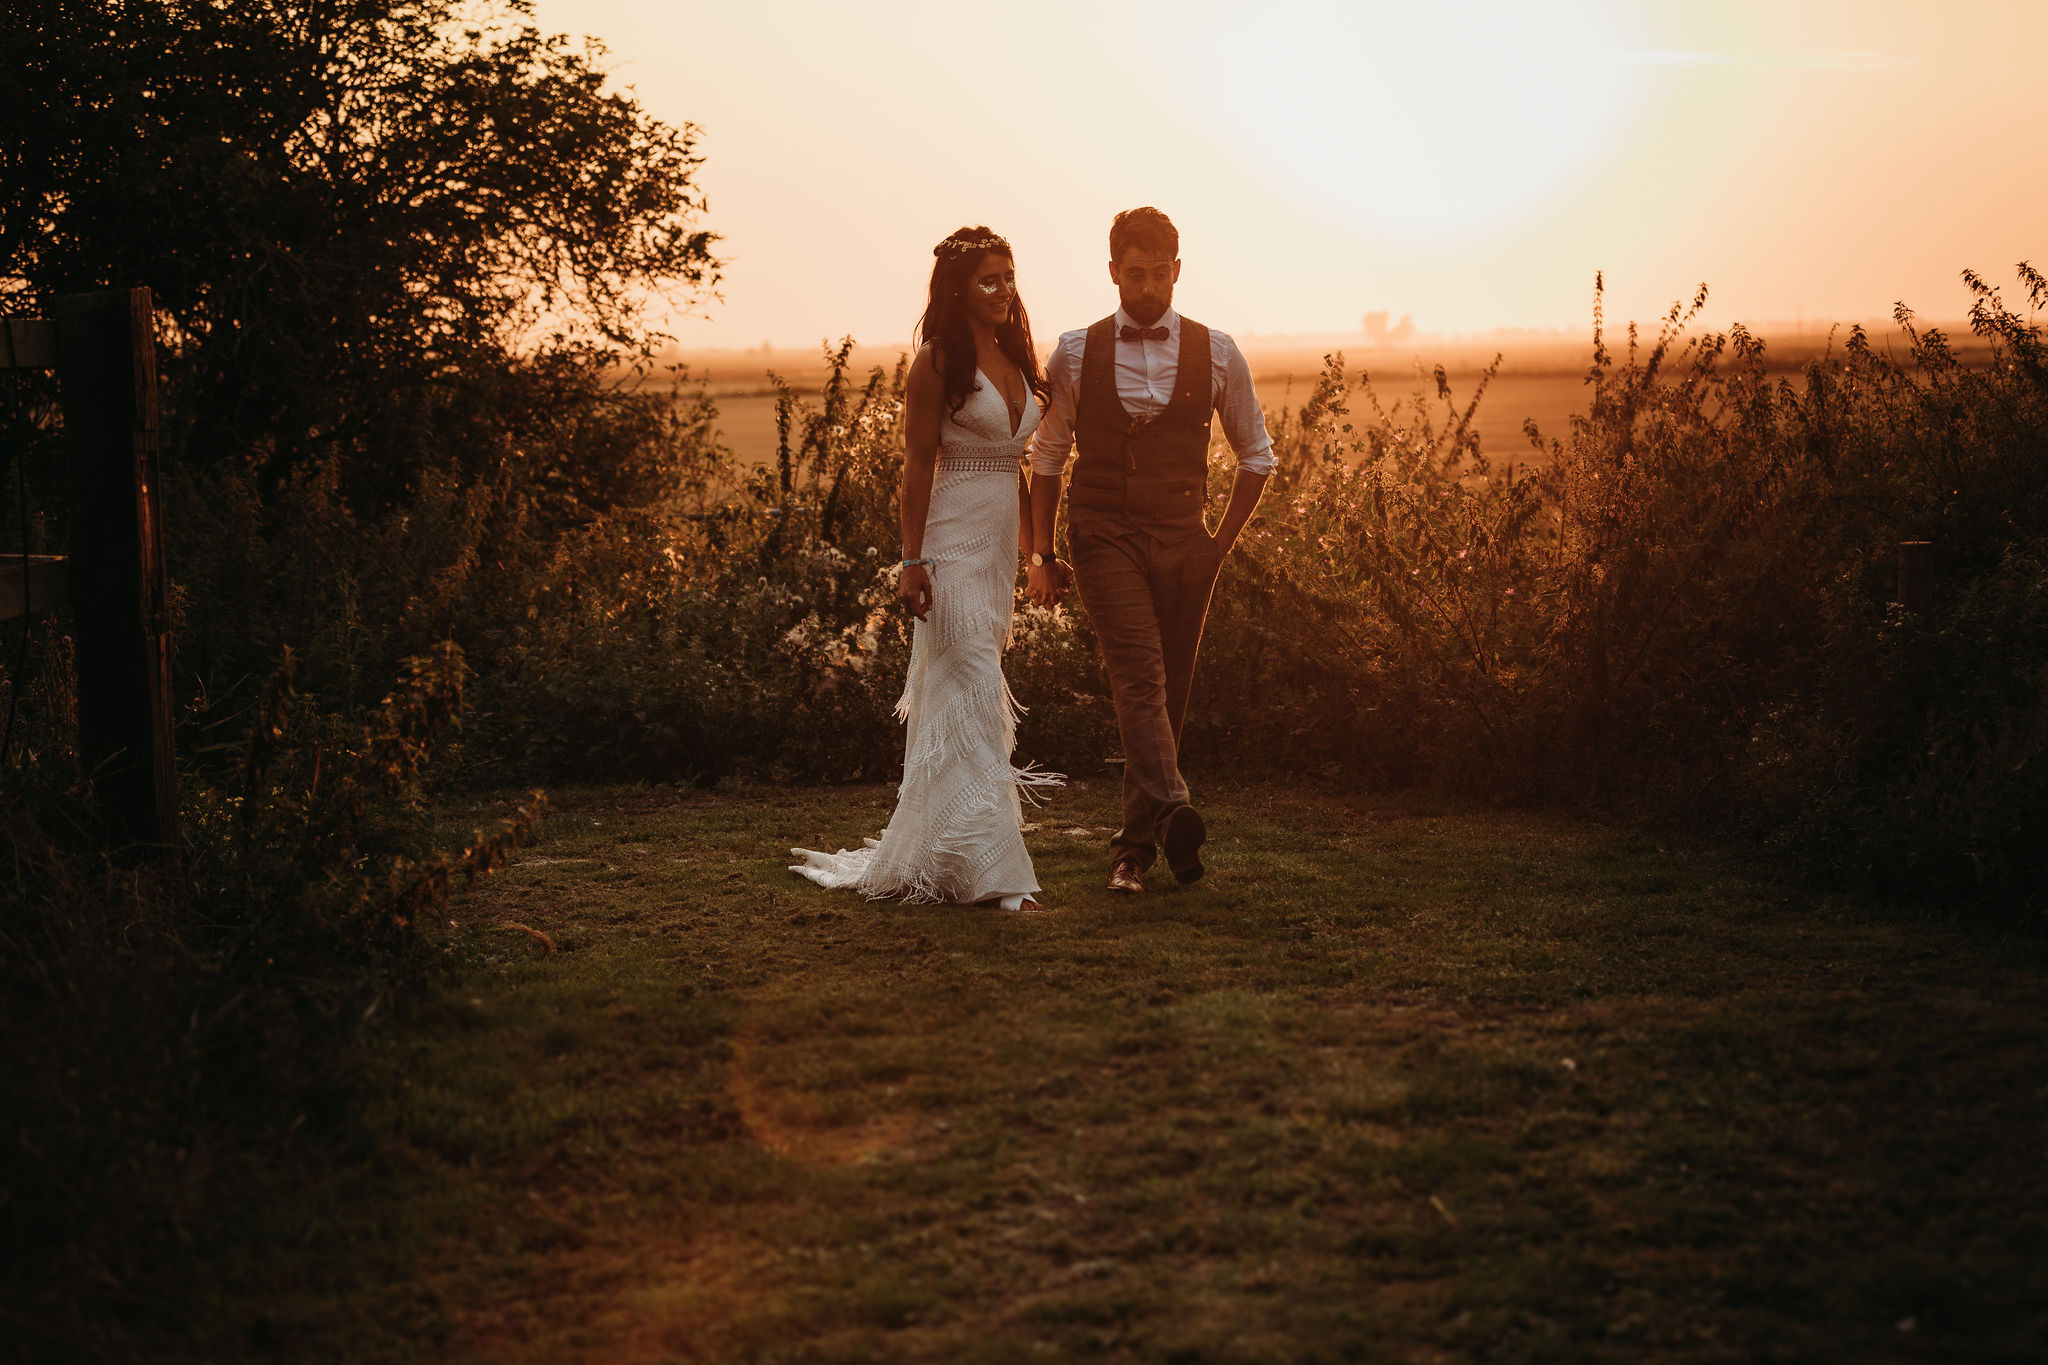 Wedding sunset over fens